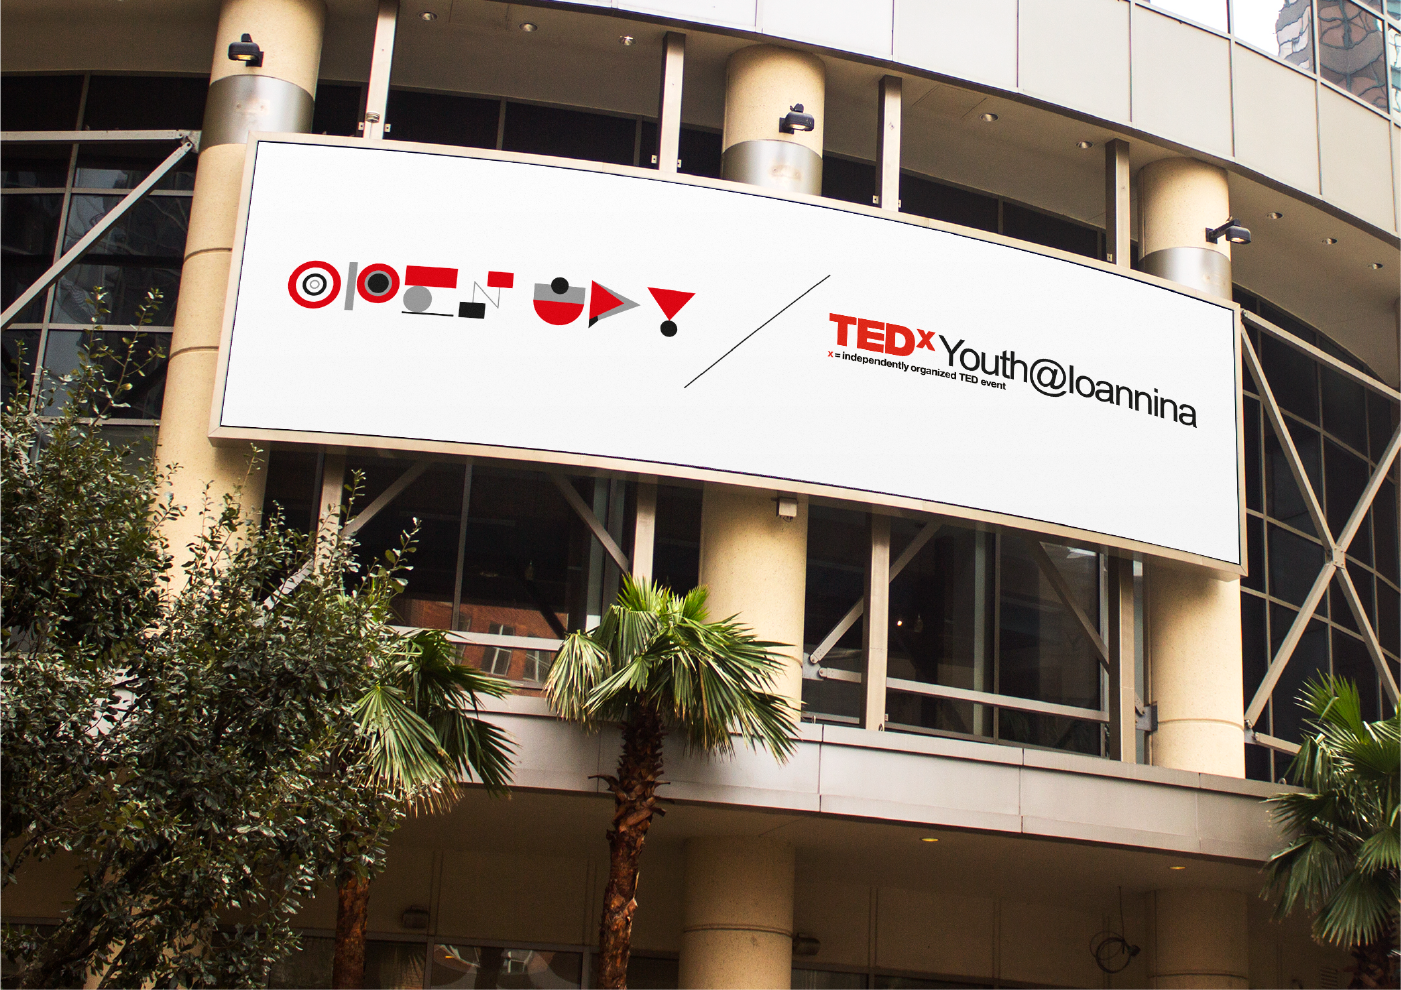 TEDxYouth@Ioannina | OPEN UP